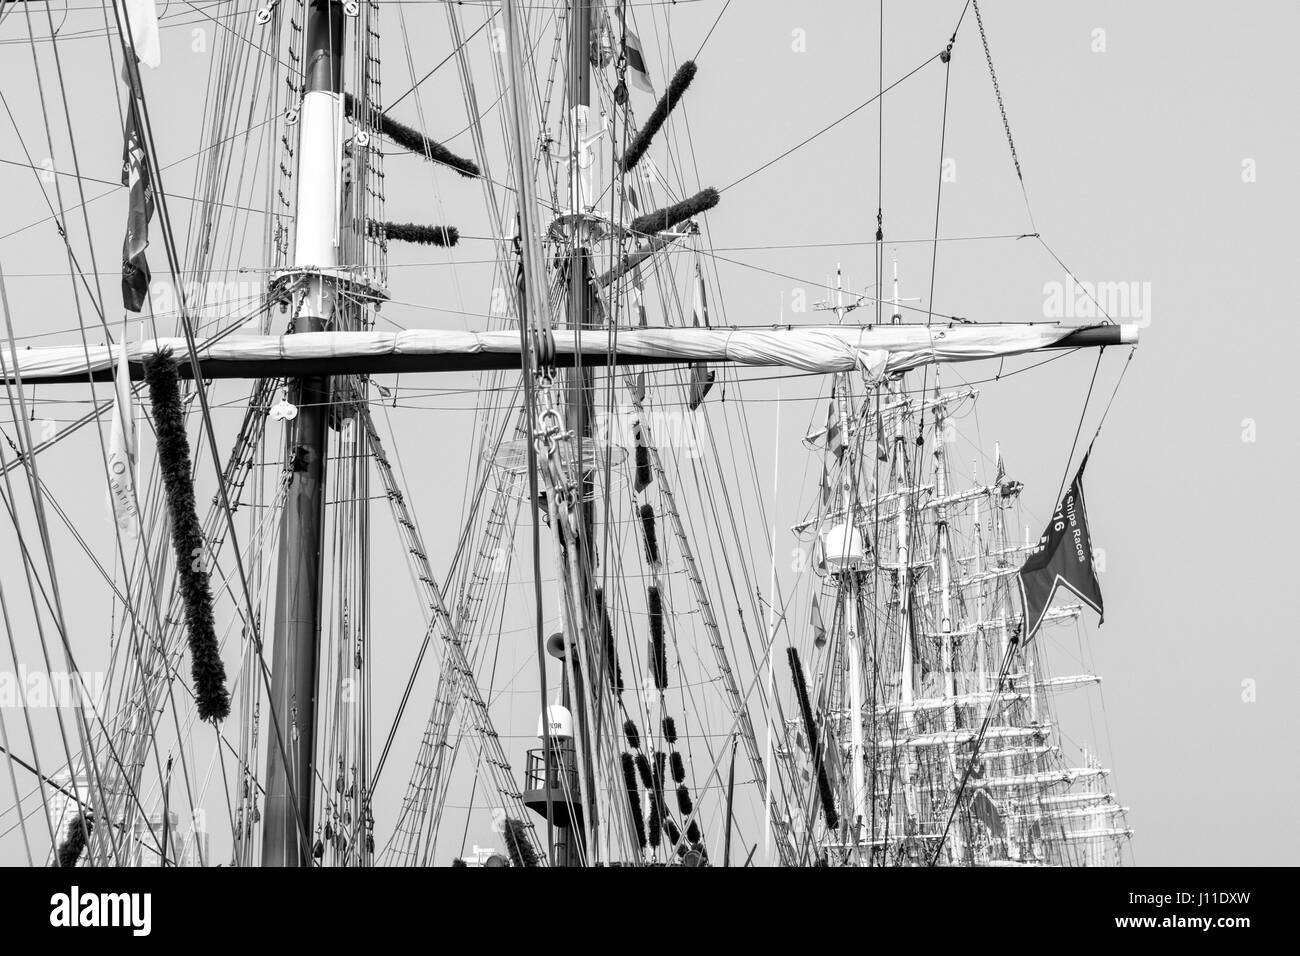 Low Angle View of Tall Ships Masts Against Clear Sky - Stock Image